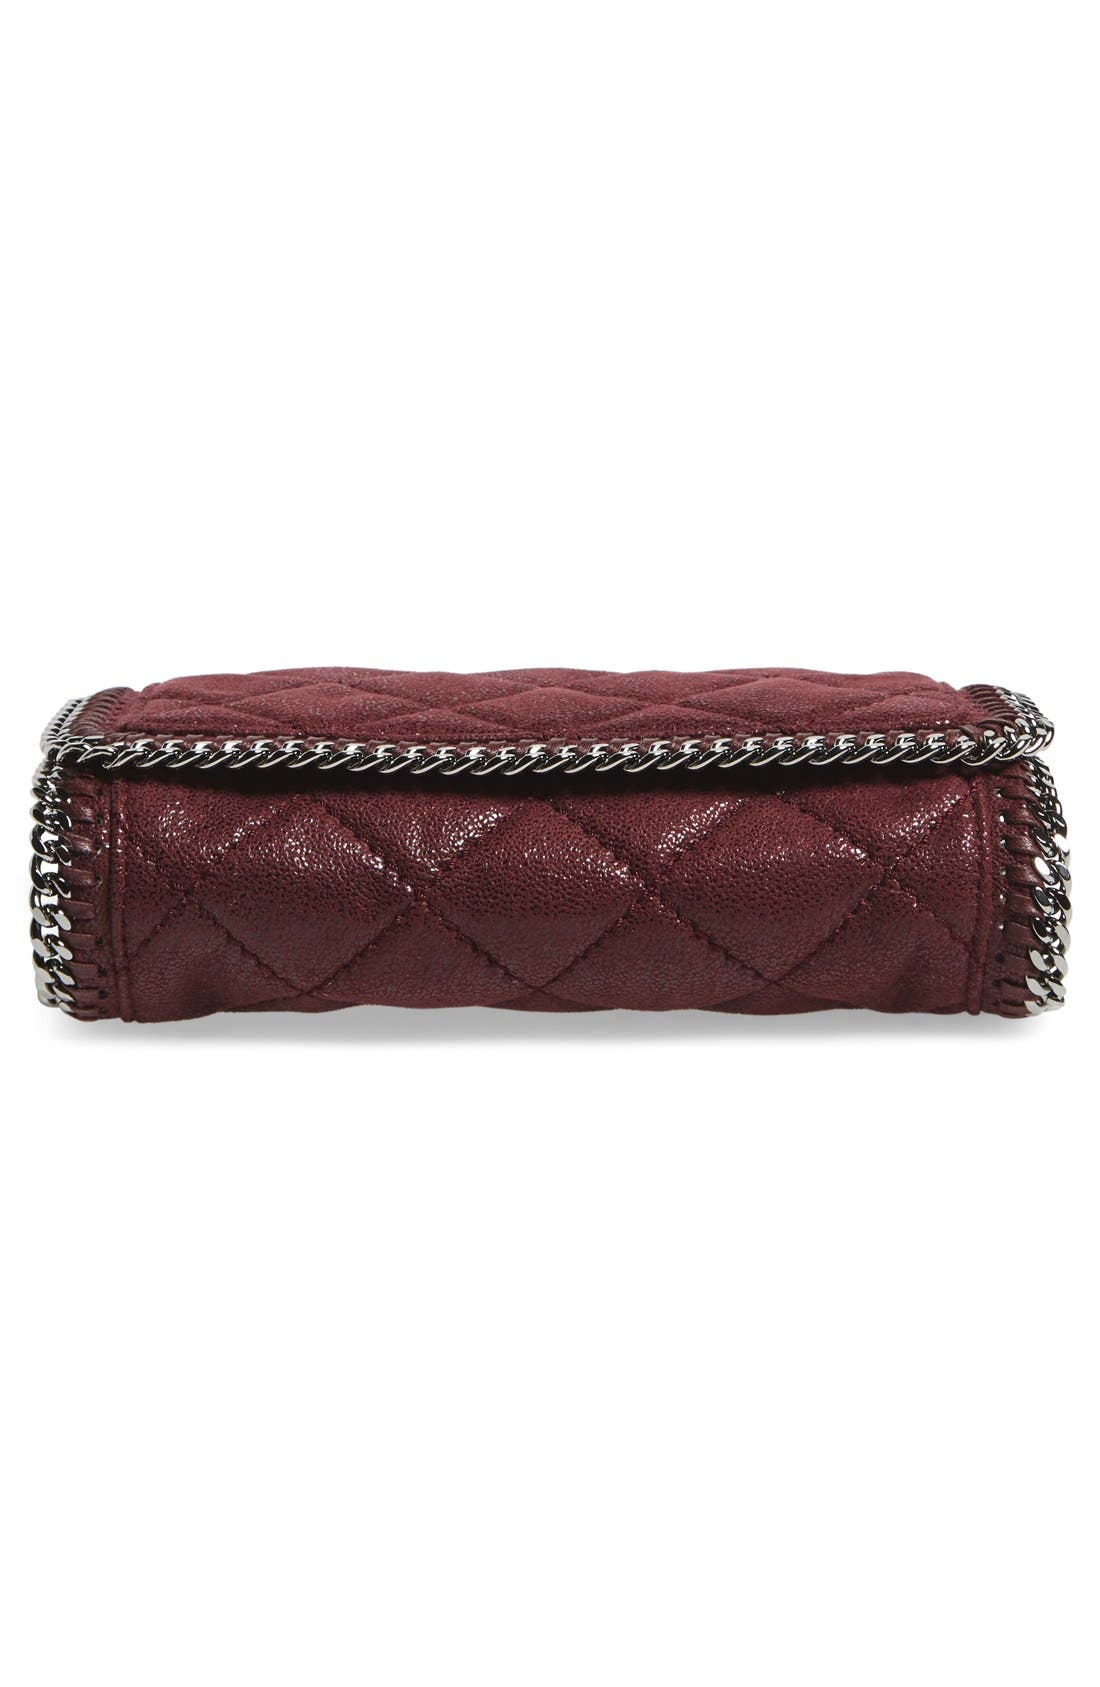 'Falabella' Quilted Faux Leather Crossbody Bag,                             Alternate thumbnail 20, color,